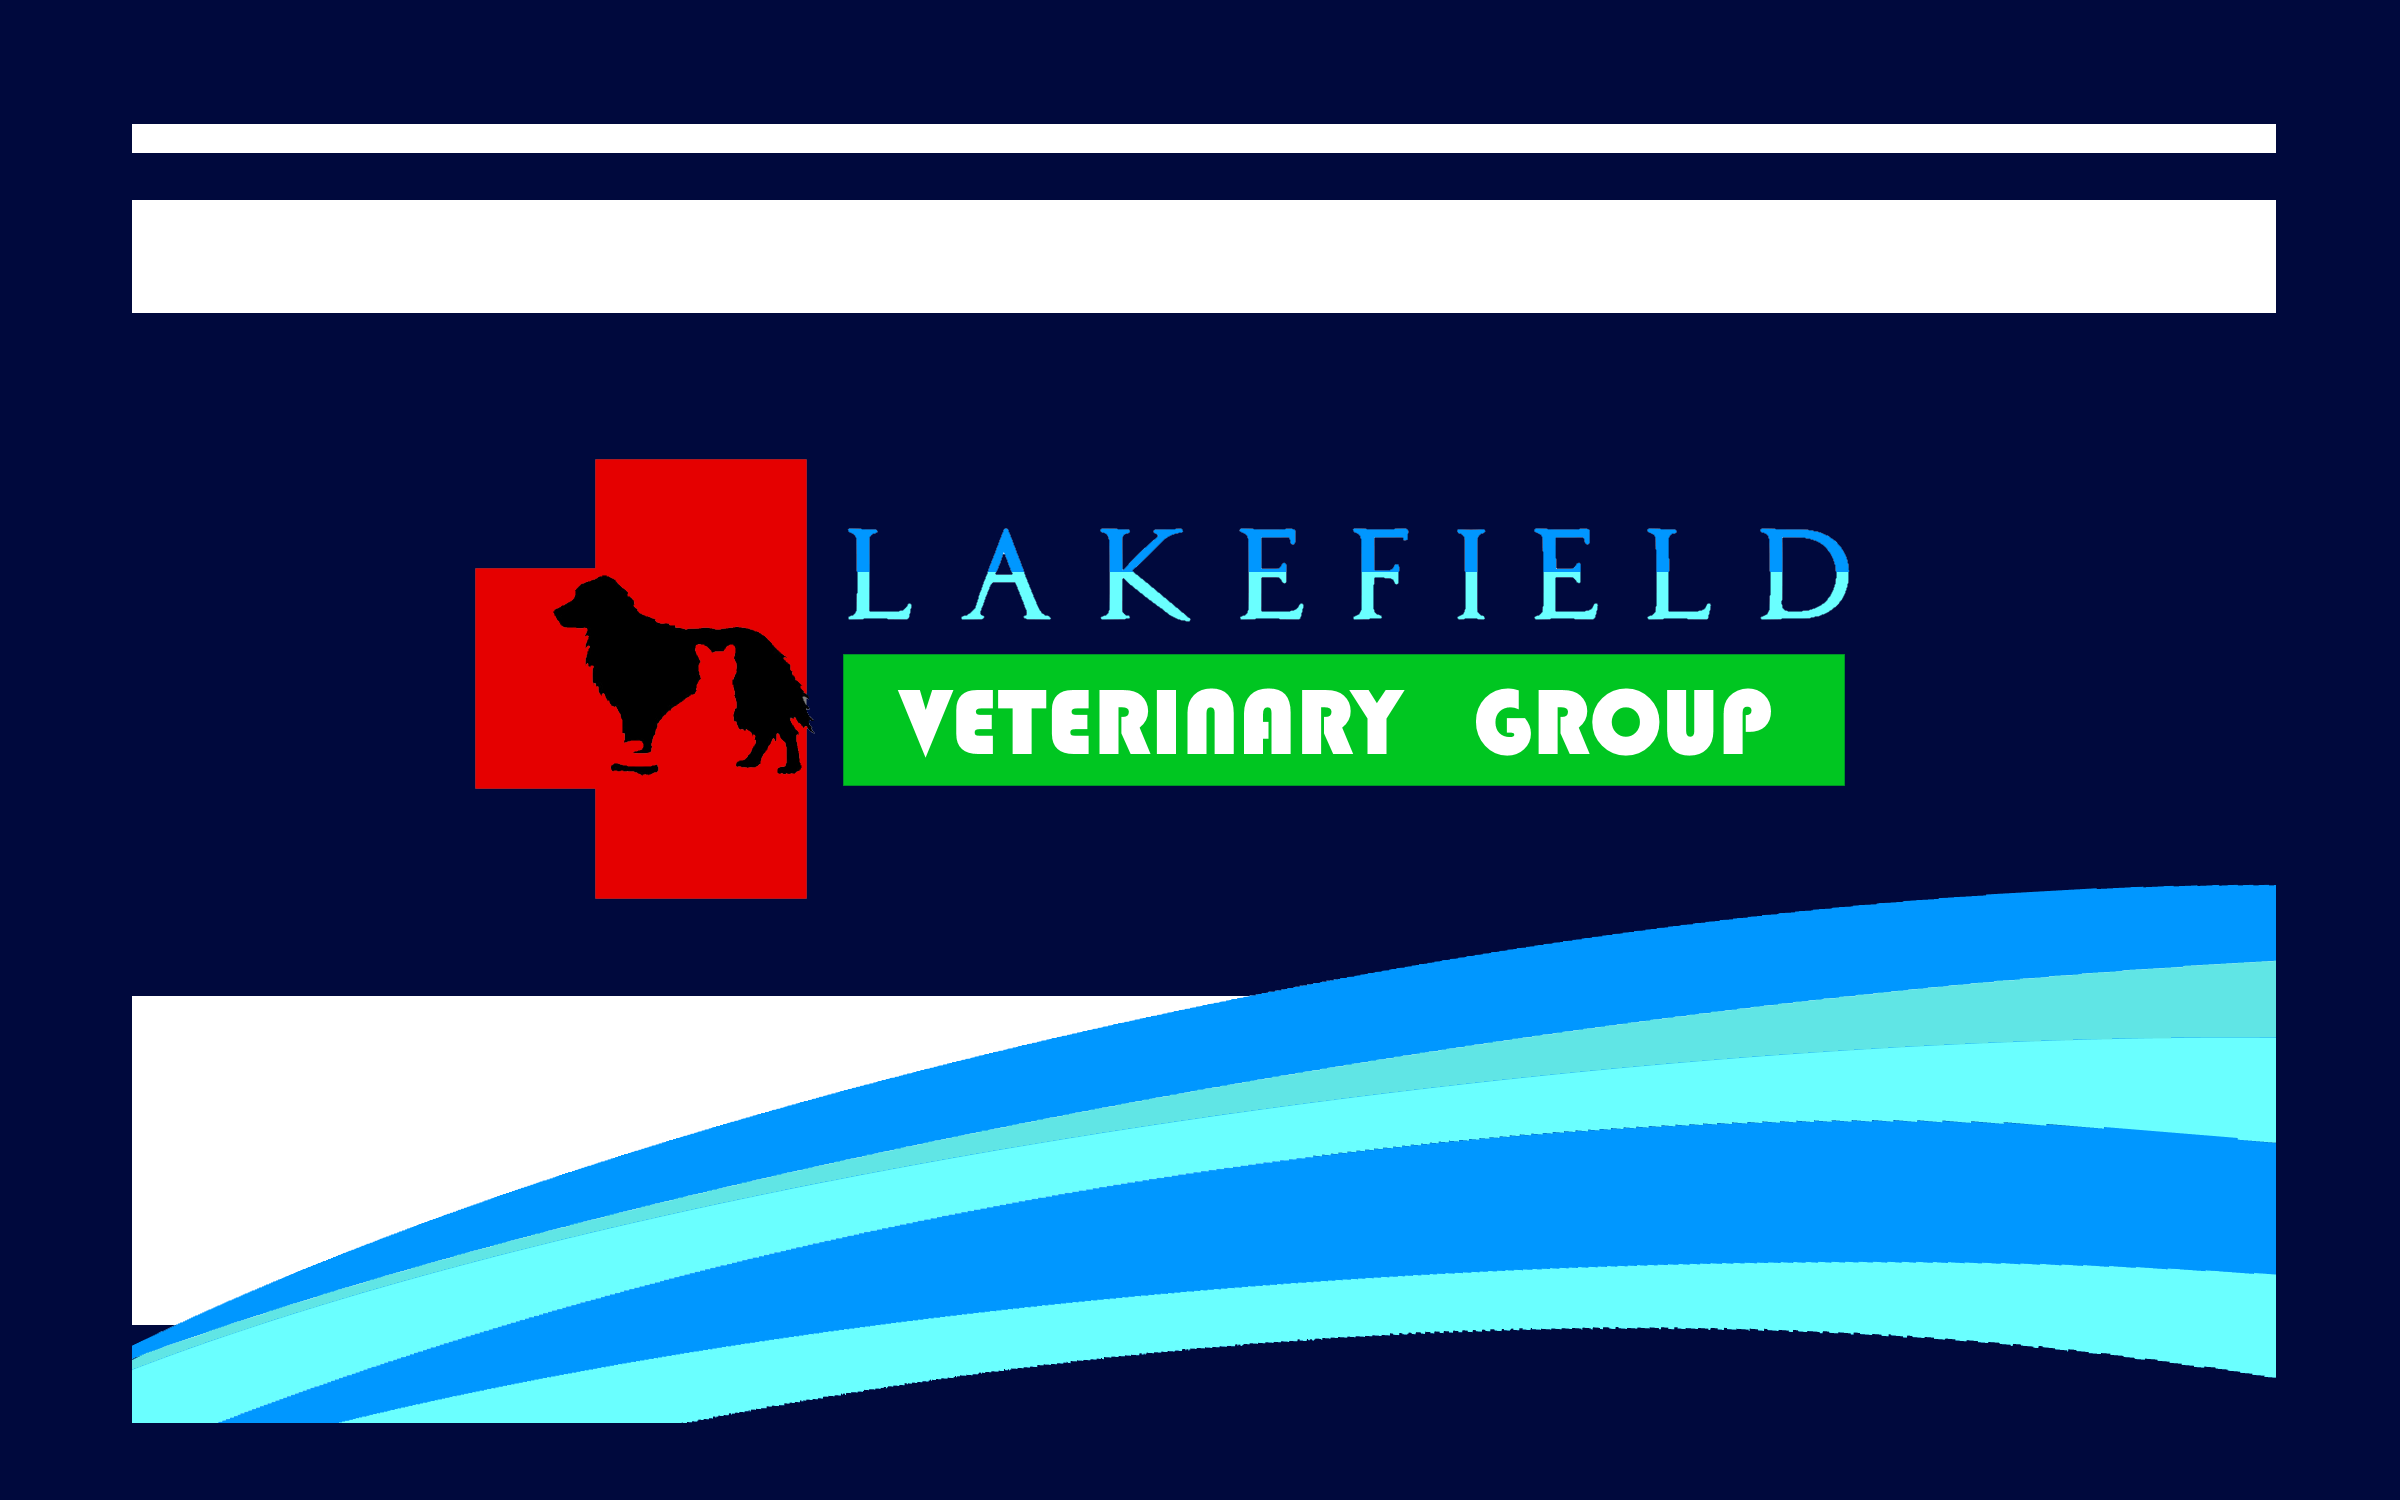 Logo Design by Roberto Bassi - Entry No. 24 in the Logo Design Contest Inspiring Logo Design for Lakefield Veterinary Group.